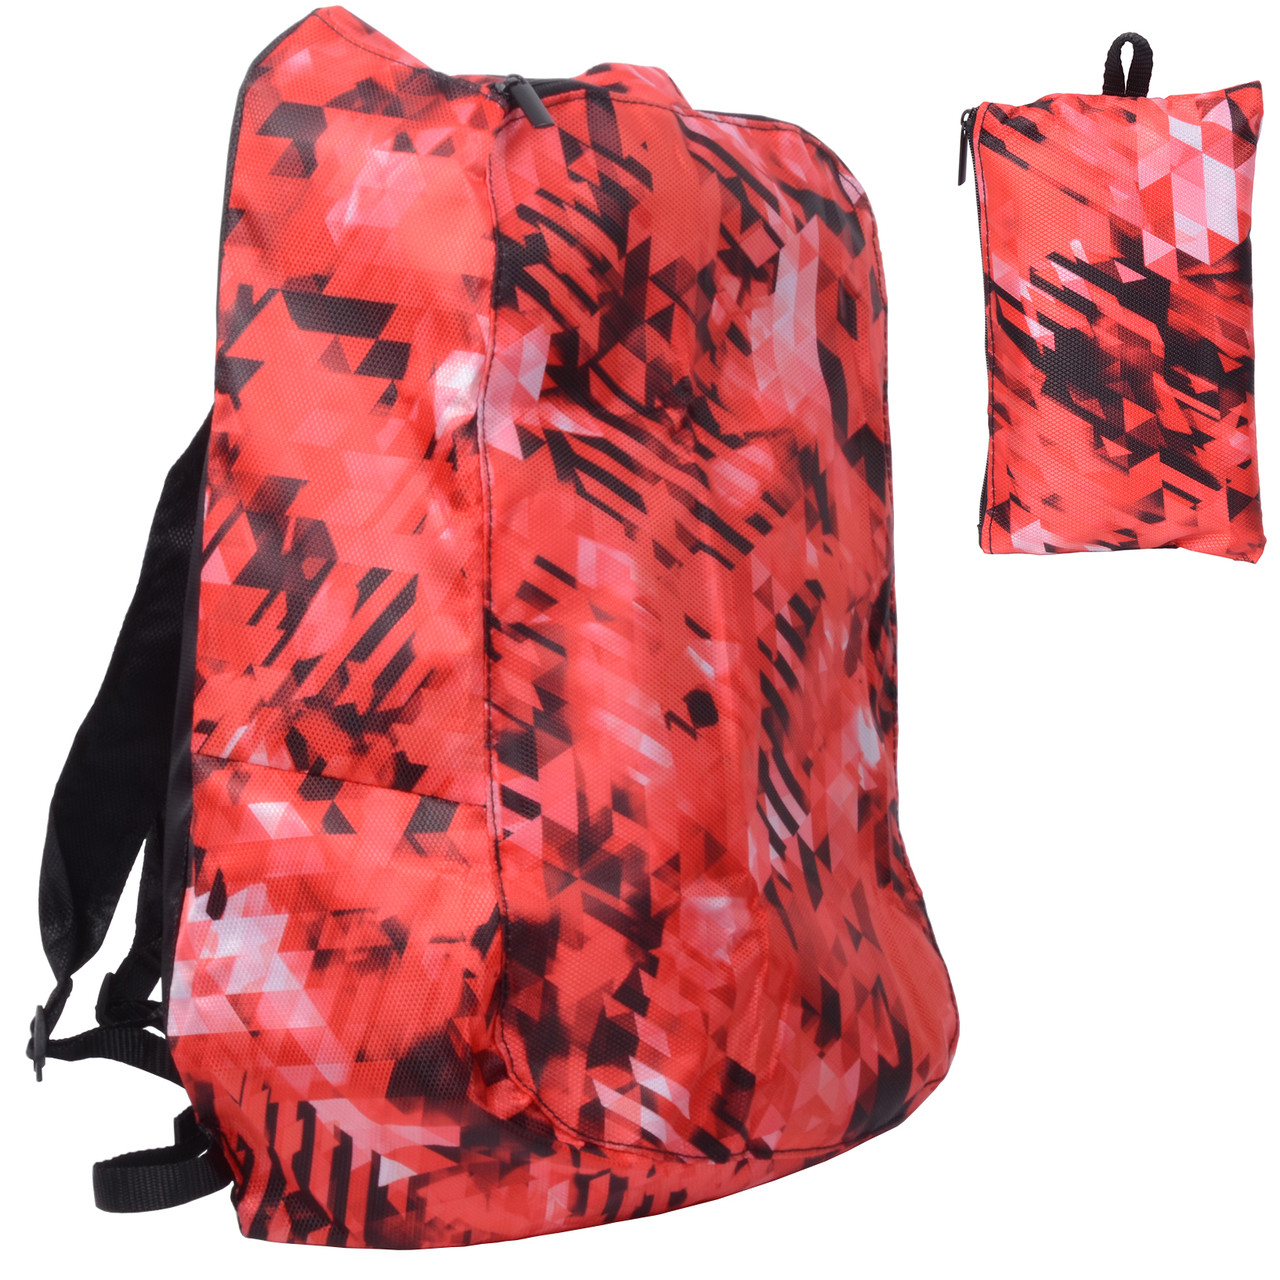 Releaserain Ultra Lightweight Handy Waterproof Red Black Mosaic Folding  Backpack Daypack with Zipped Pouch 14L Packable Foldable Portable Bag for  Camping ... 4e79e1ecfb